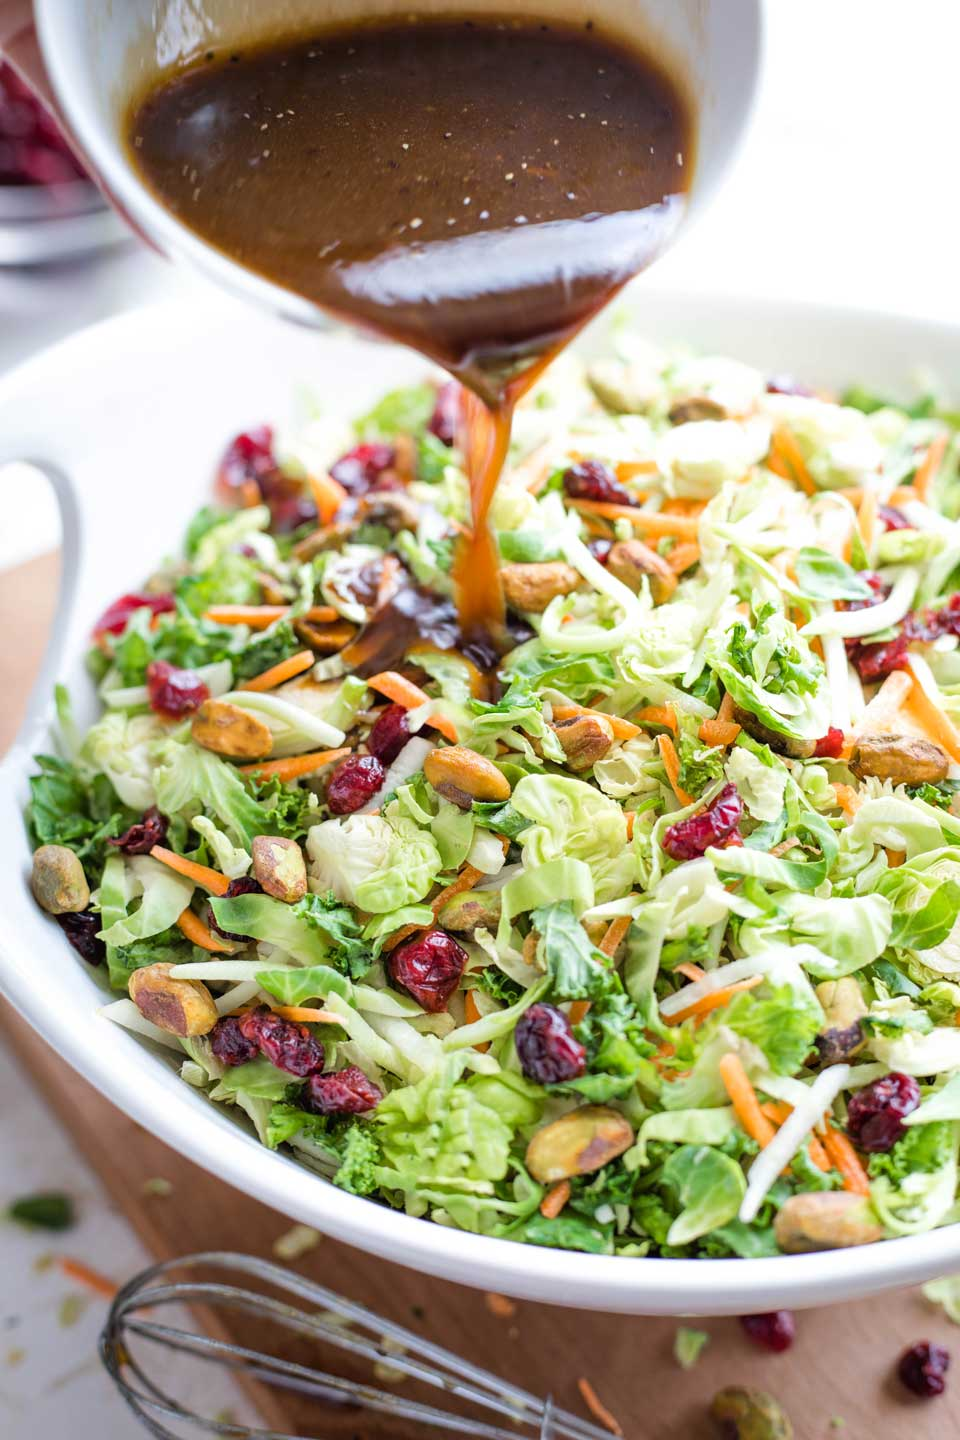 Dish of Maple-Balsamic Salad Dressing being poured on top of a large bowl of the Brussel Sprout Salad